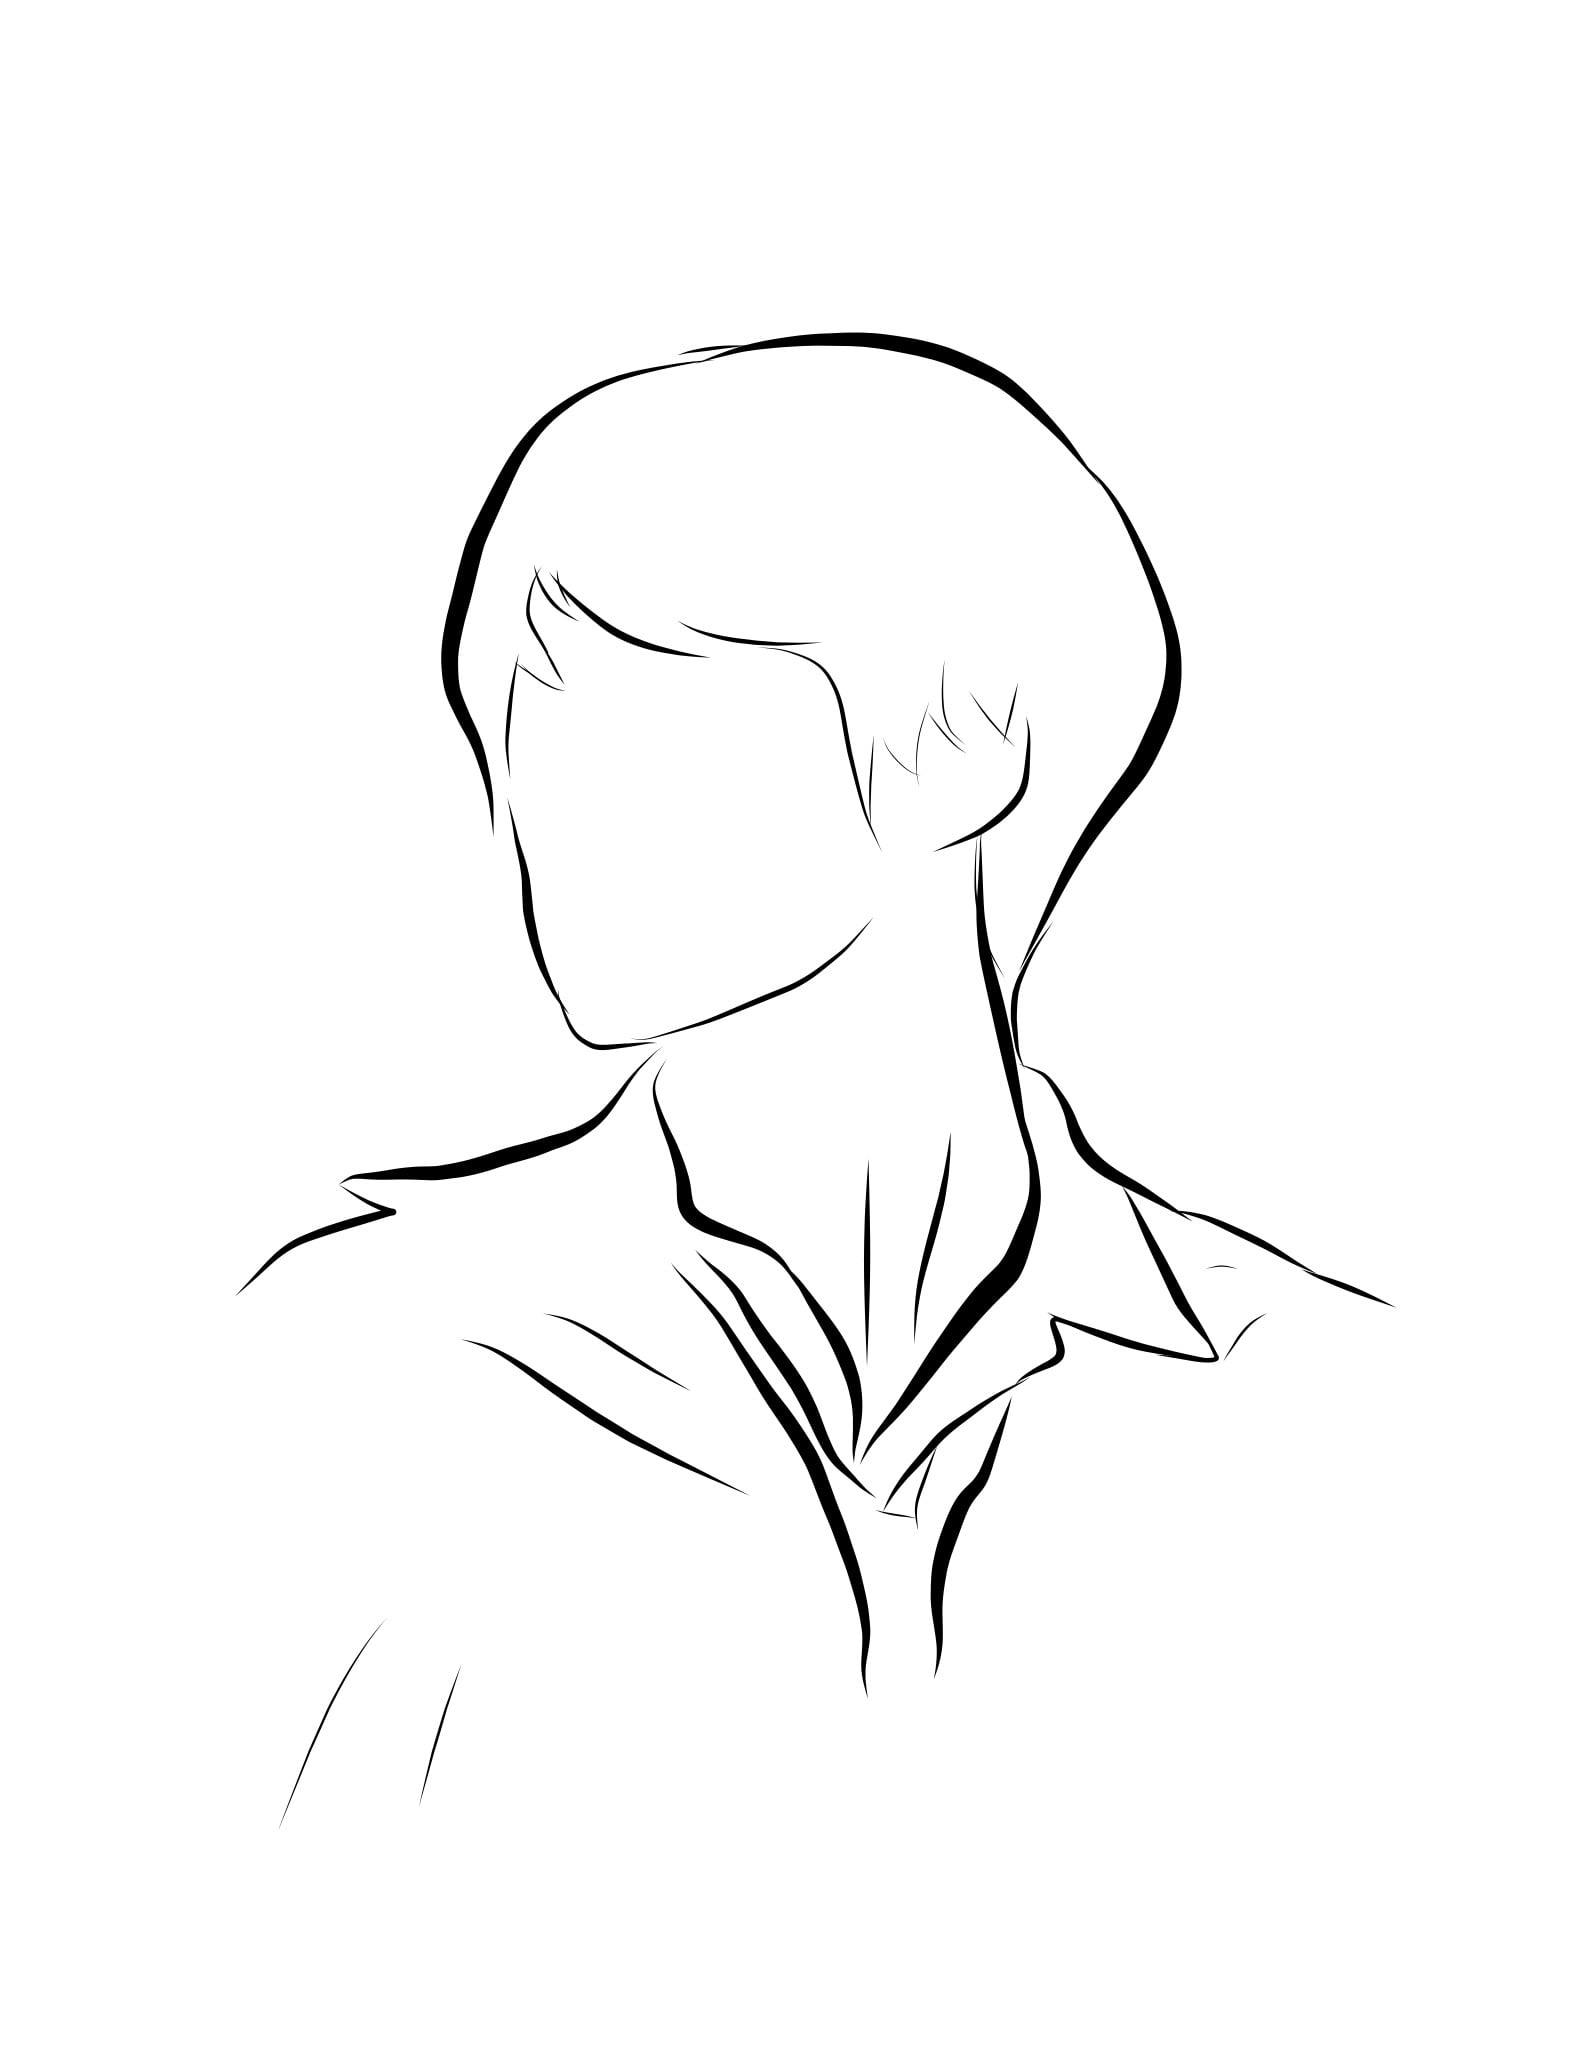 draw an outline of a picture of your kpop bias on my phone